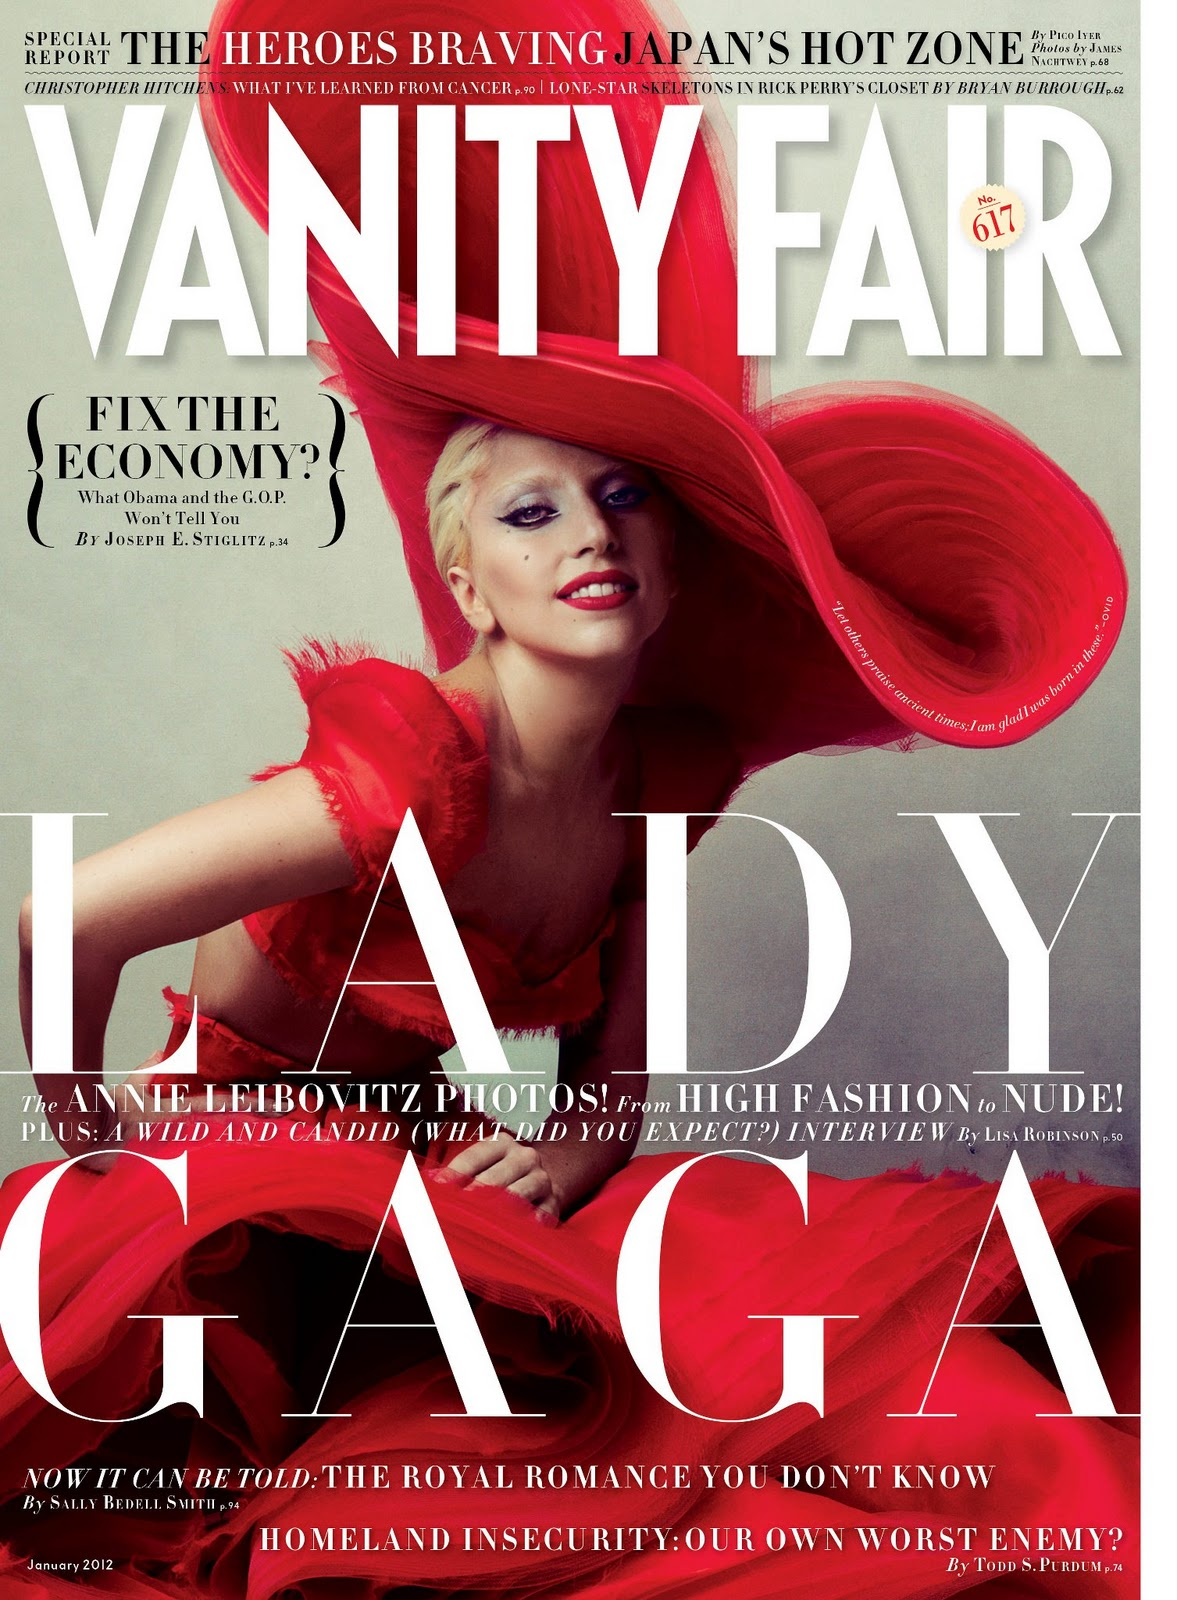 BRUSSELS IS BURNING: Lady Gaga's cover - Elle magazine ...